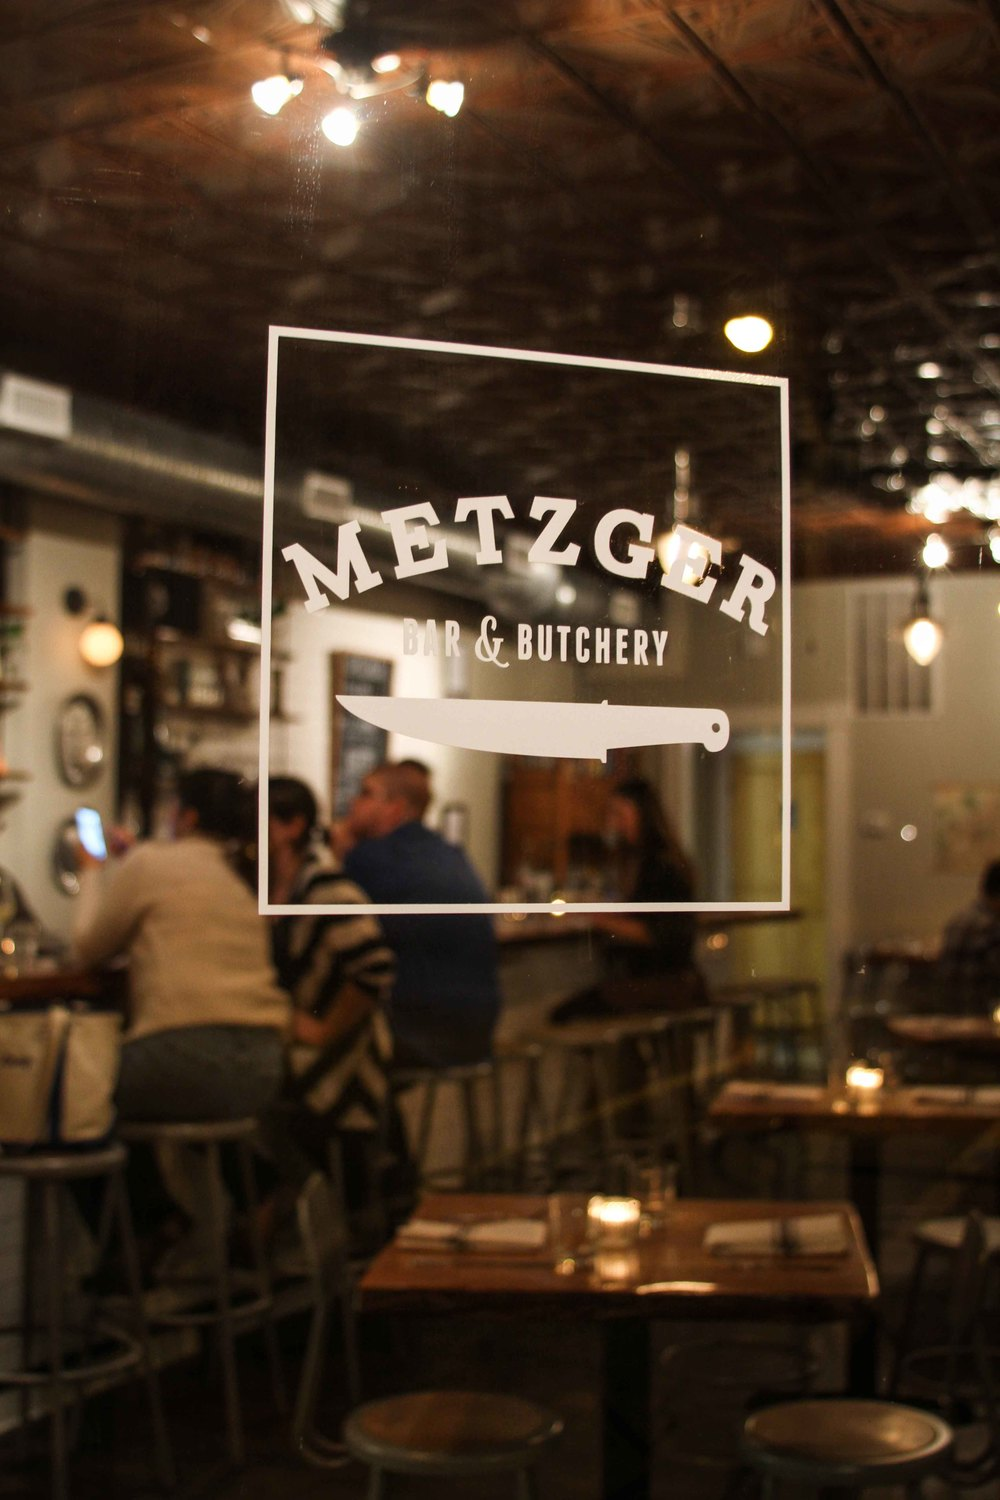 Before my 5-course birthday dinner, we pre-gamed at Meztger in Church Hill